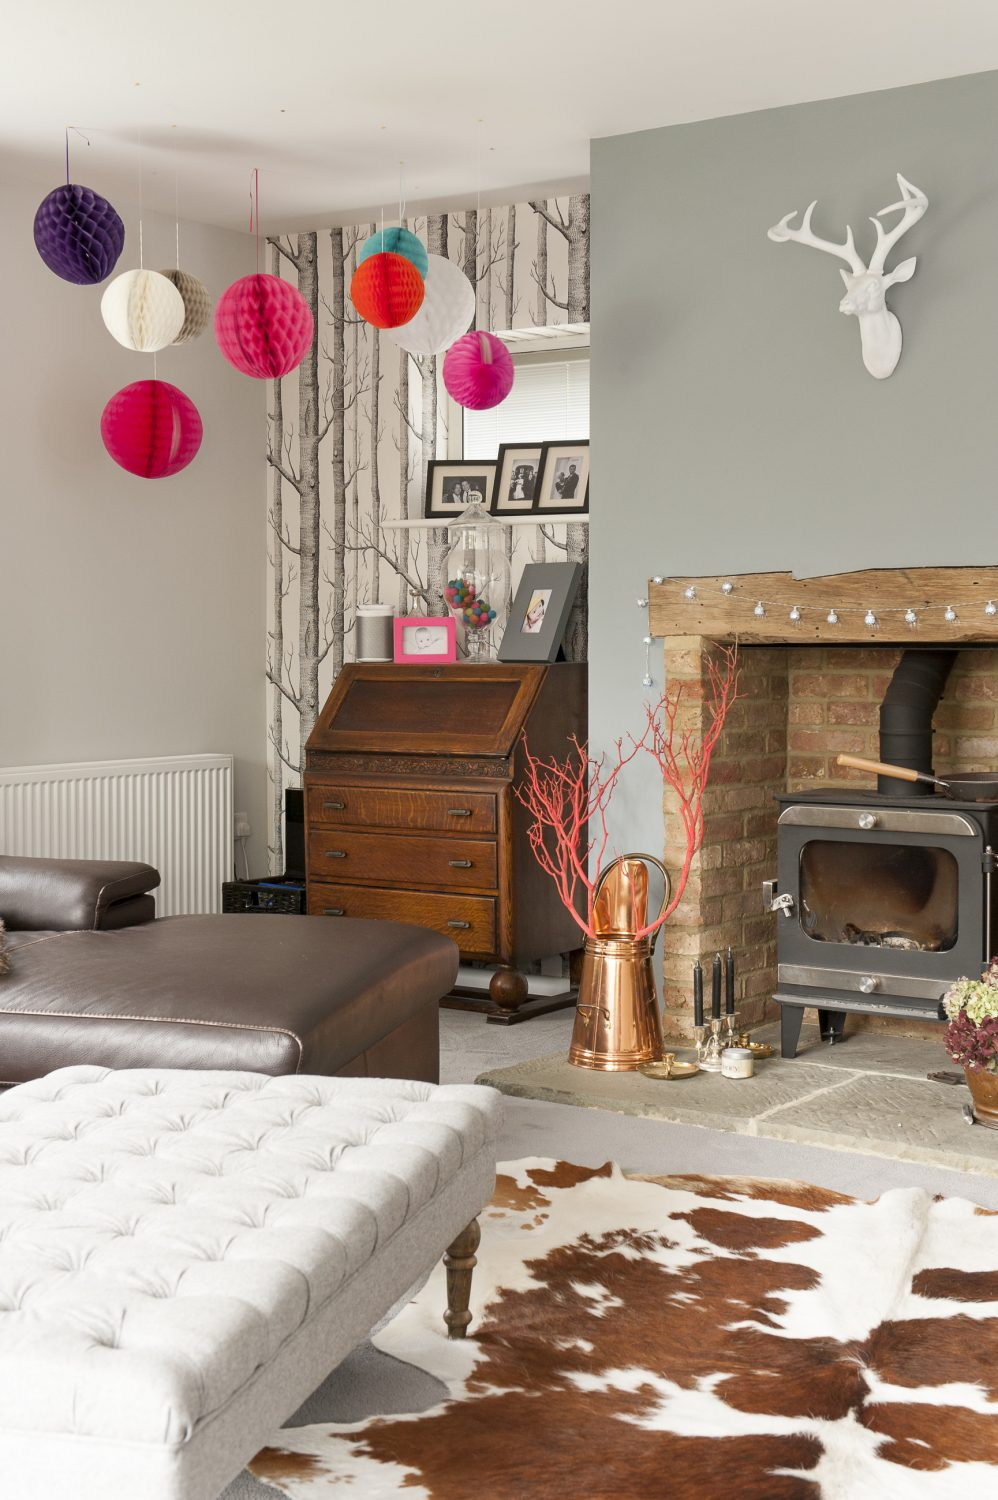 The sititng room features a reclaimed brick fireplace with oak bressumer – both the bricks and wood were sourced from Symonds Salvage in Bethersden